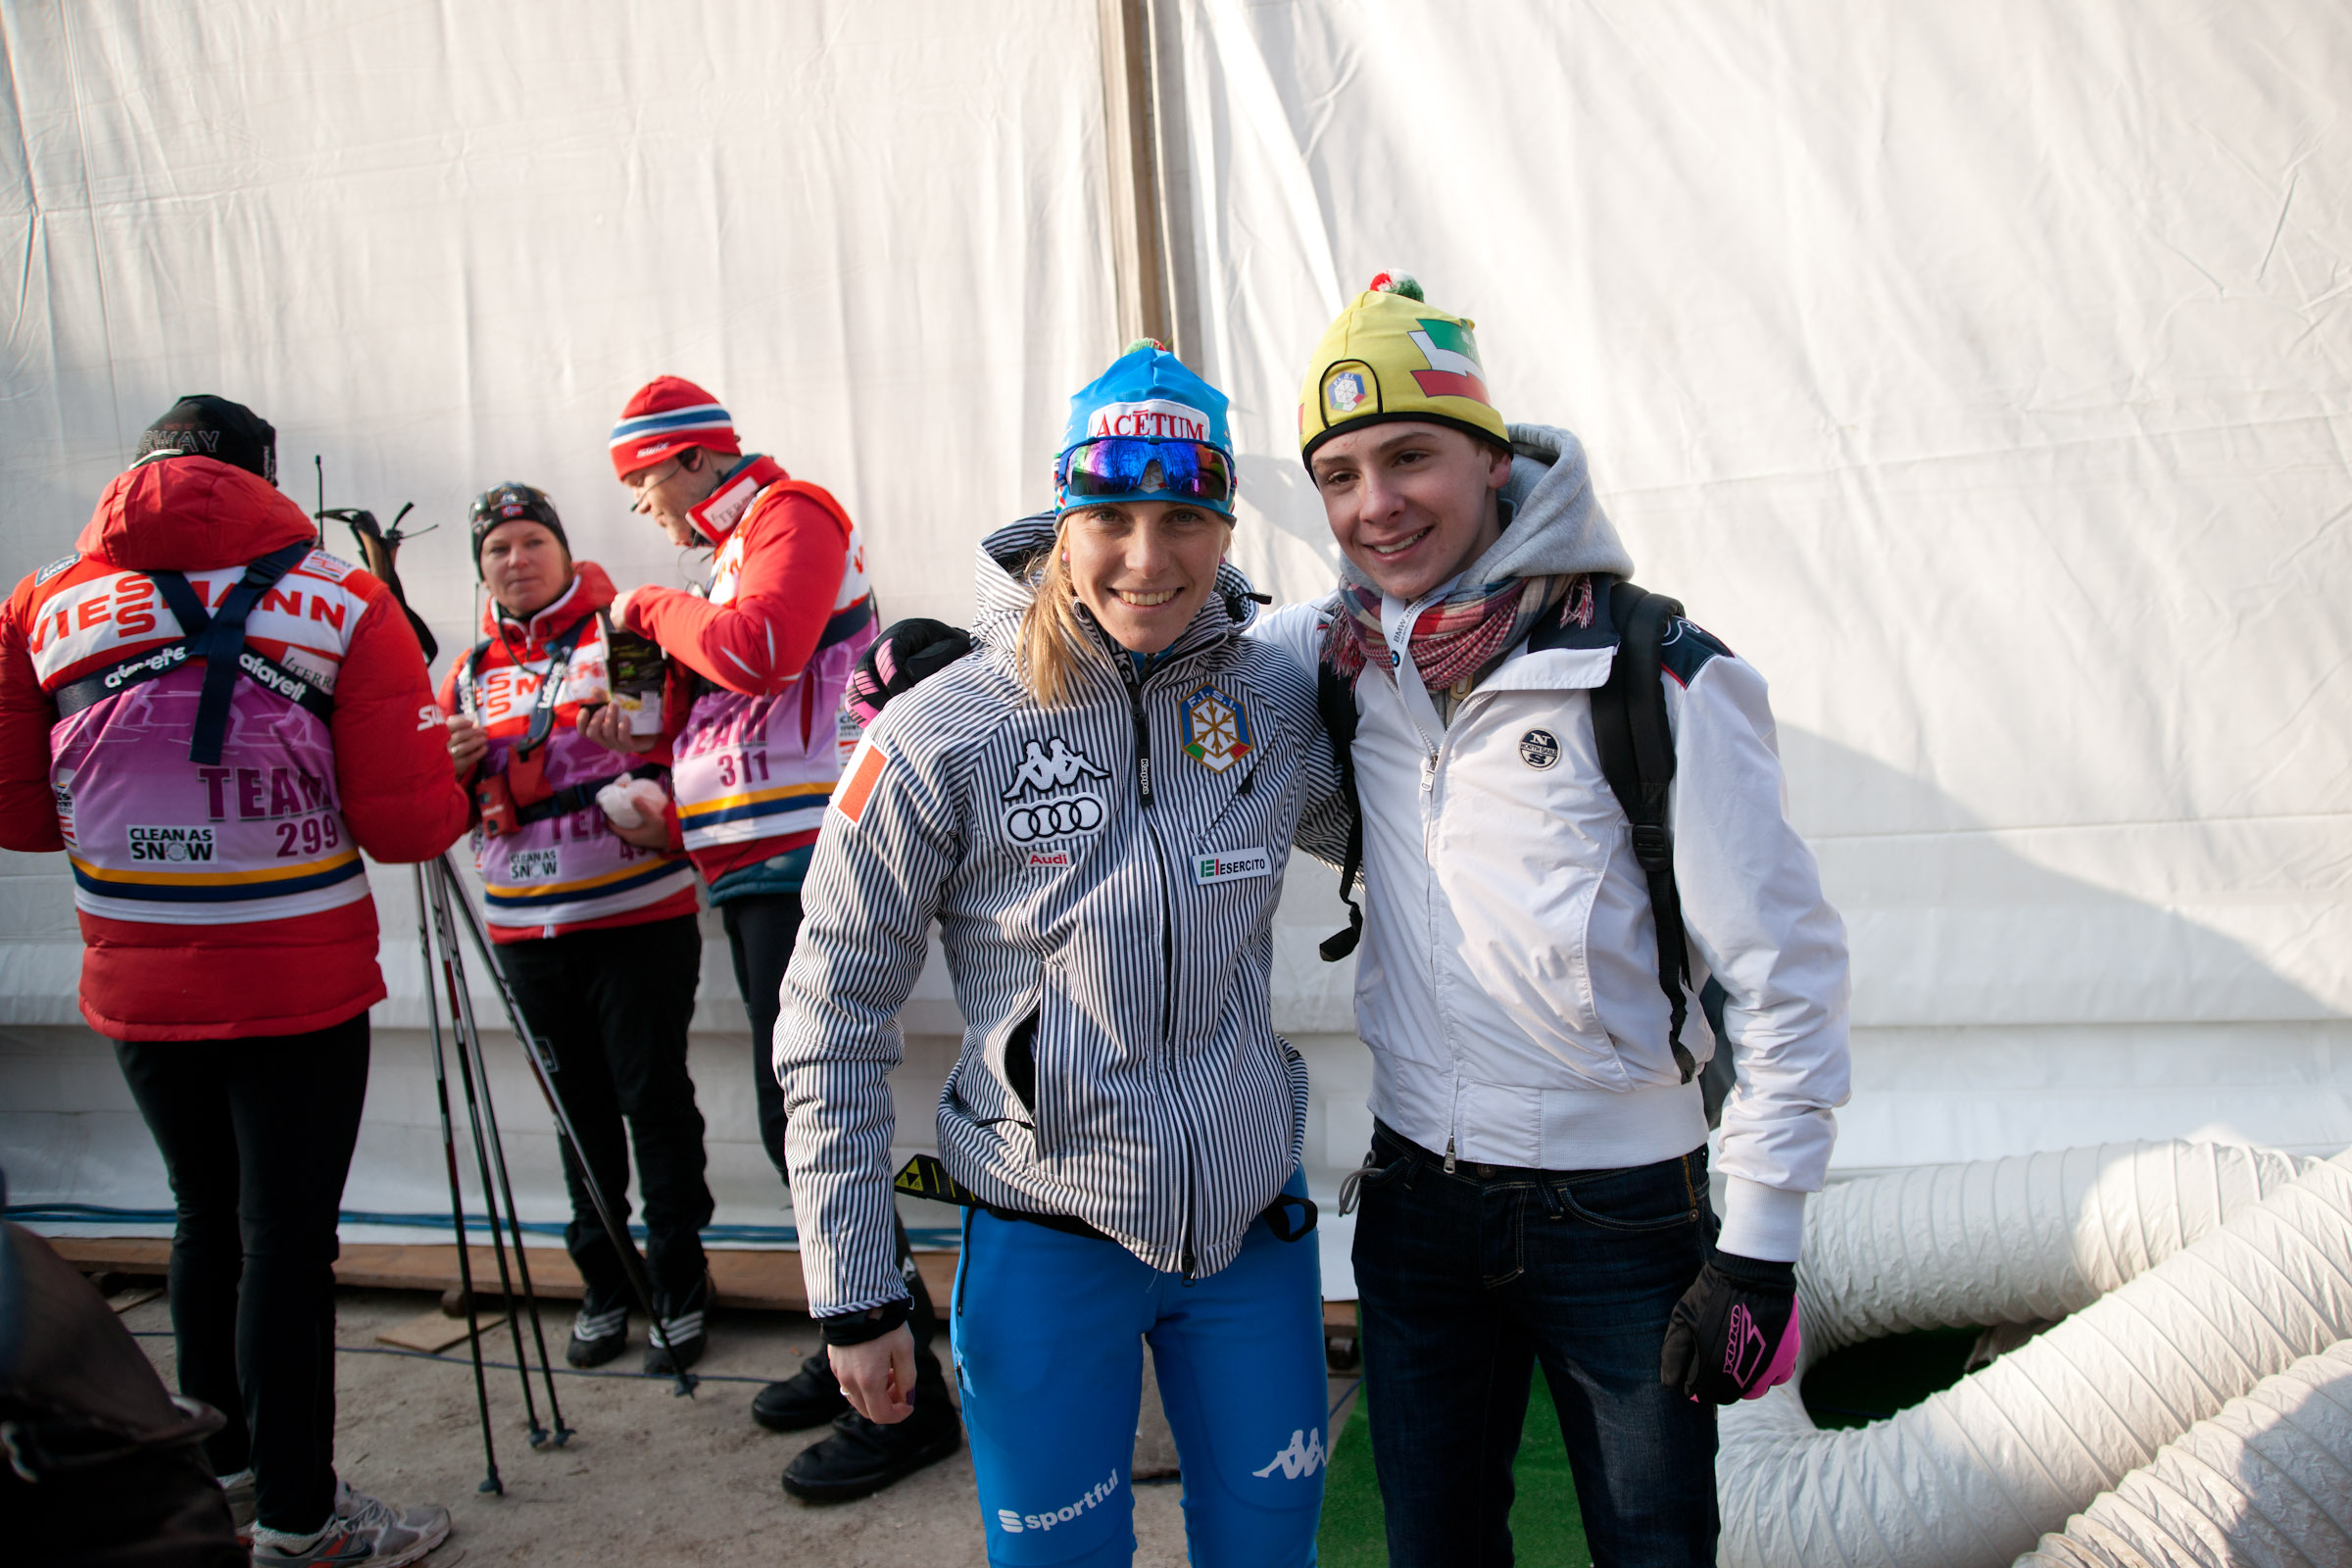 Elisa Brocard (ITA) & Fan